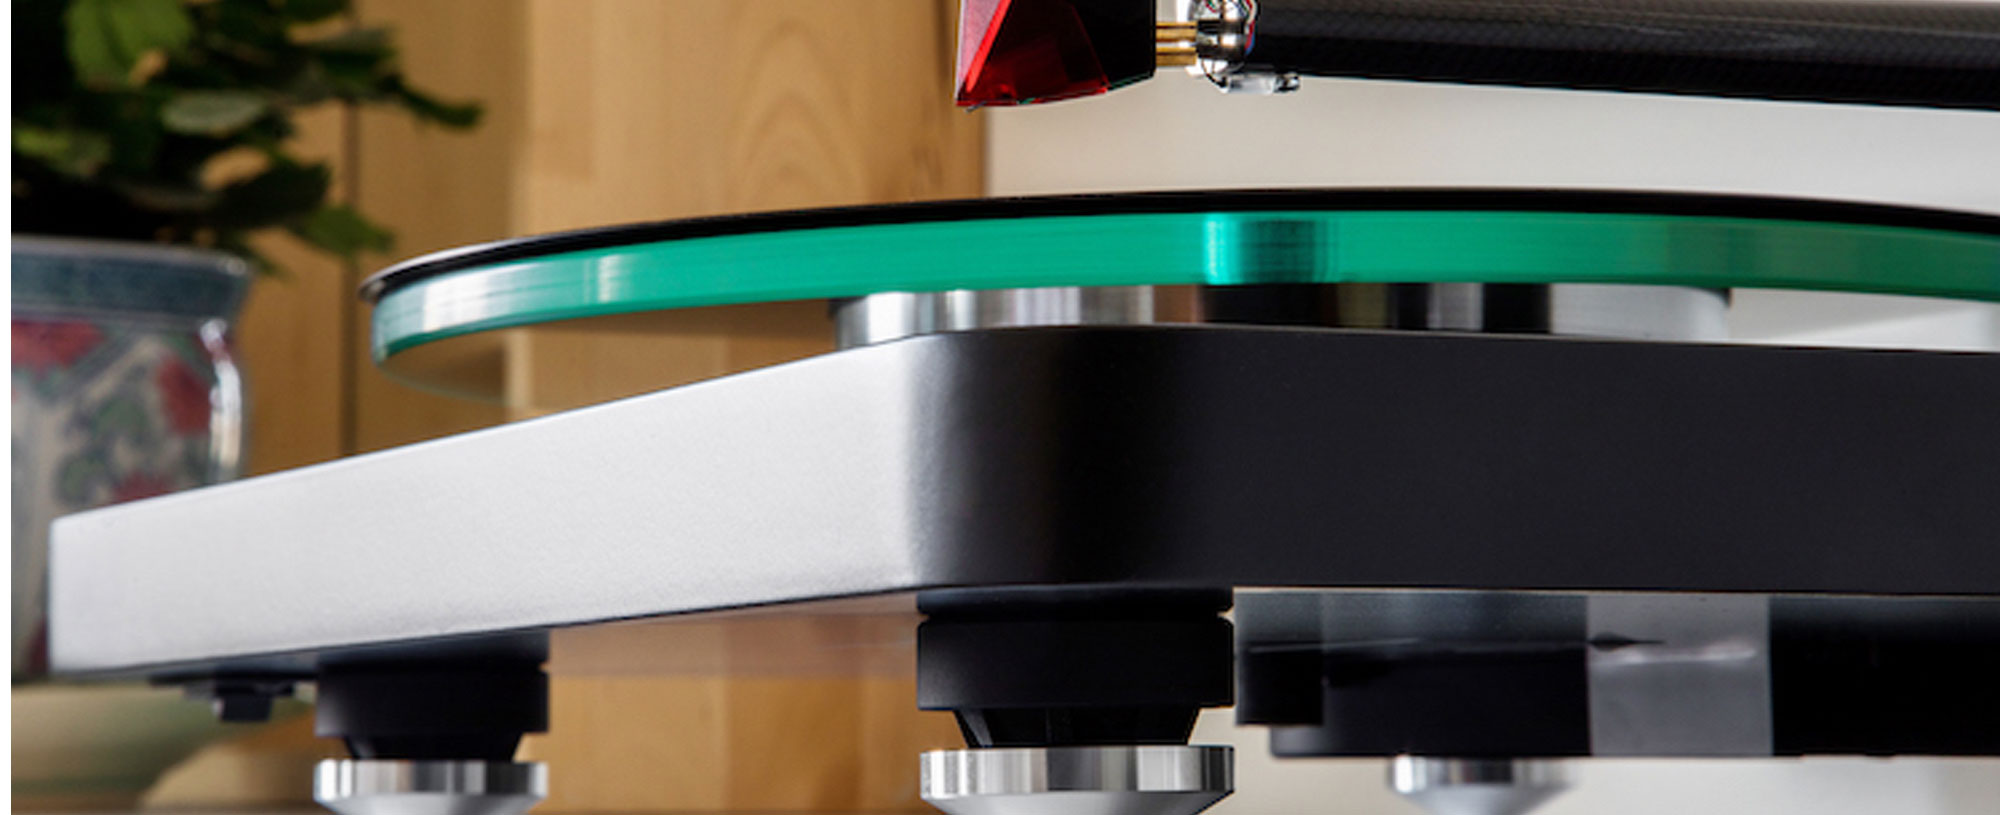 NAD C588 Belt-Drive Turntable System Preview